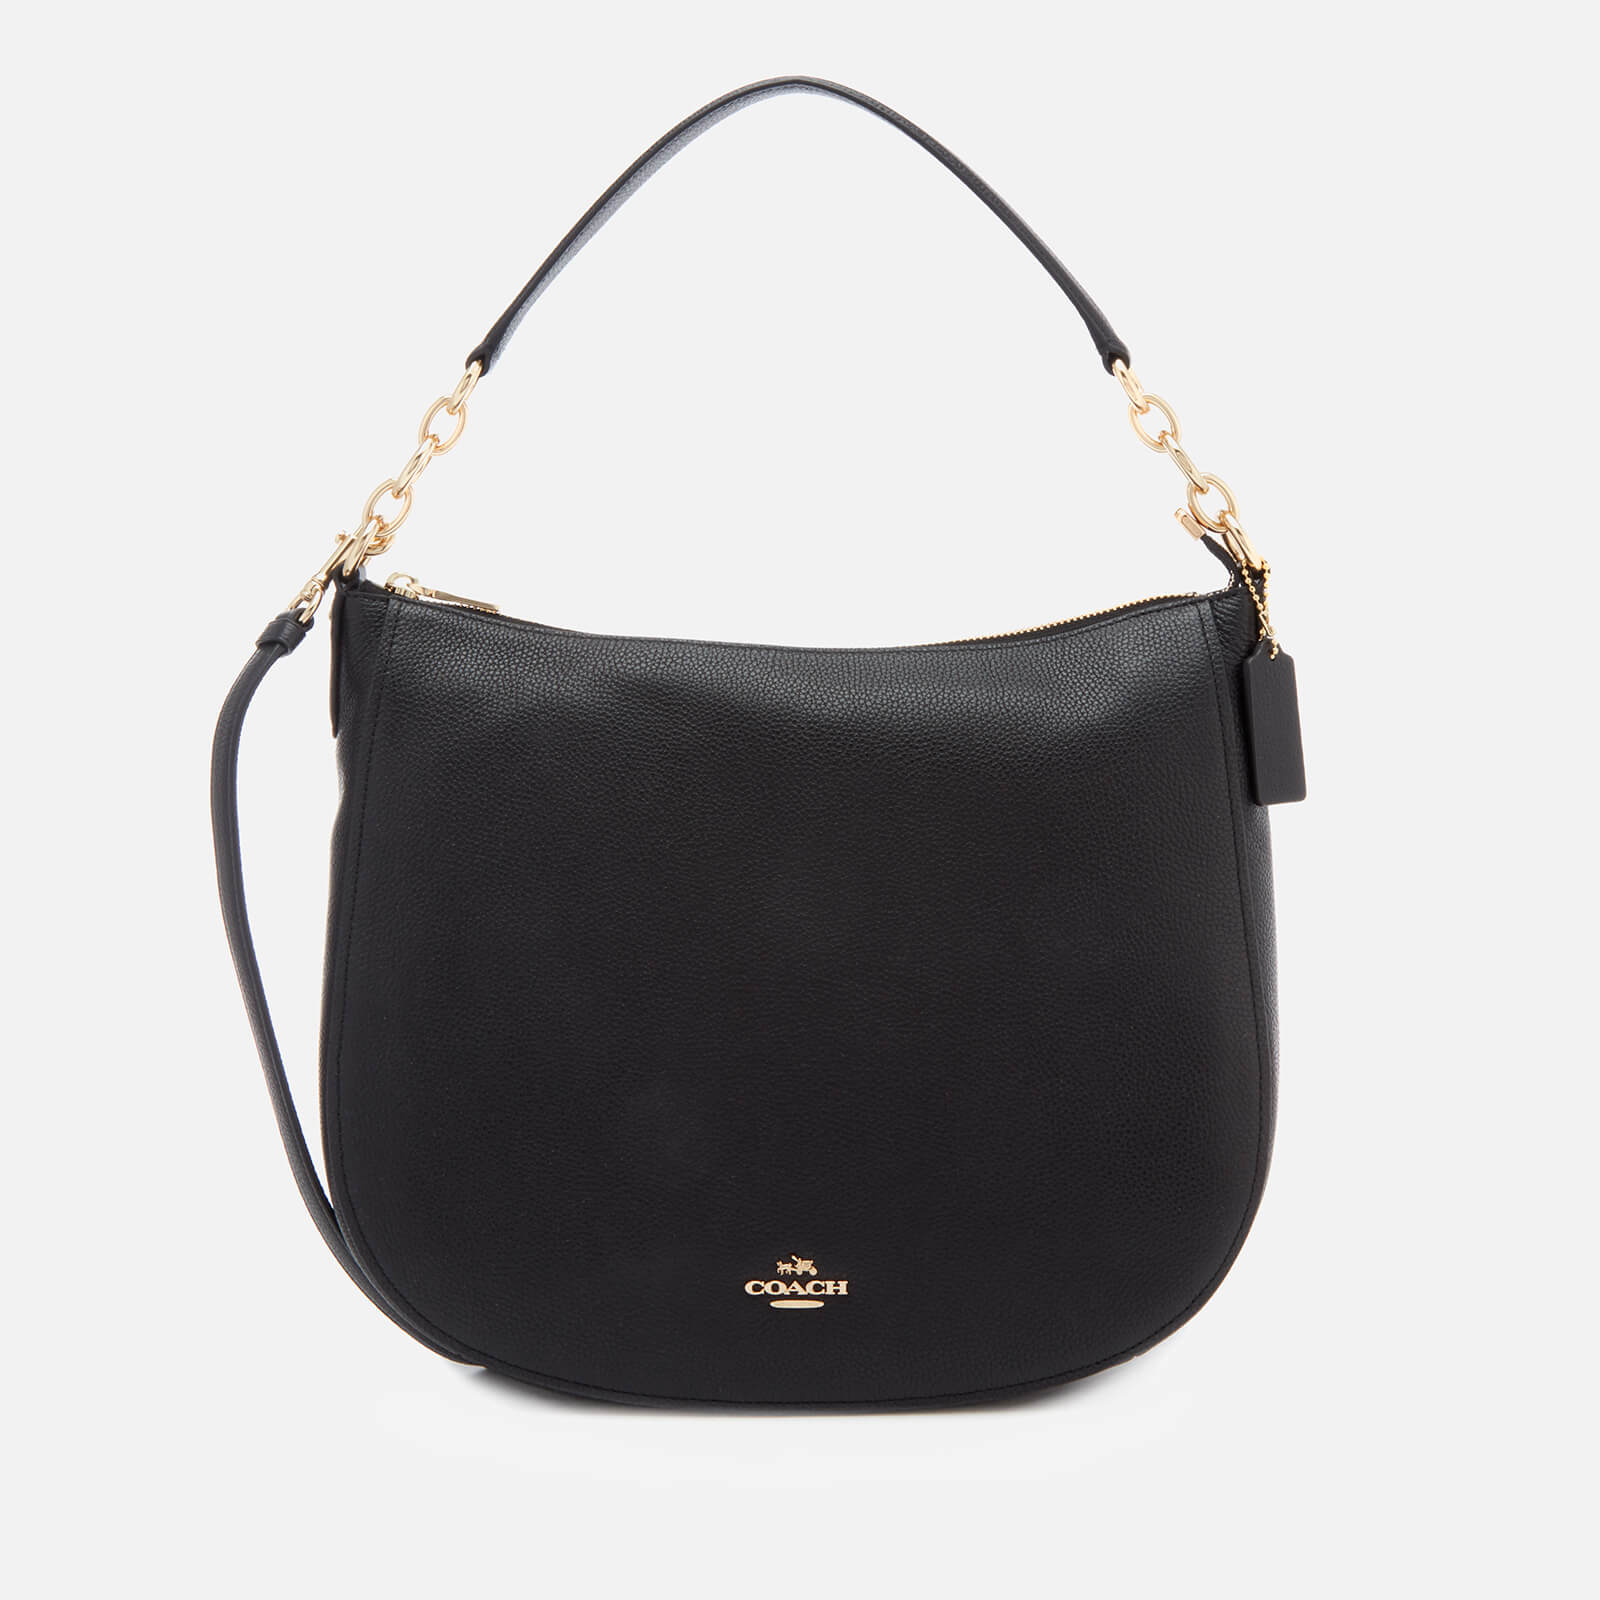 7bc8fa39175b Coach Women s Chelsea 32 Hobo Bag - Black - Free UK Delivery over £50